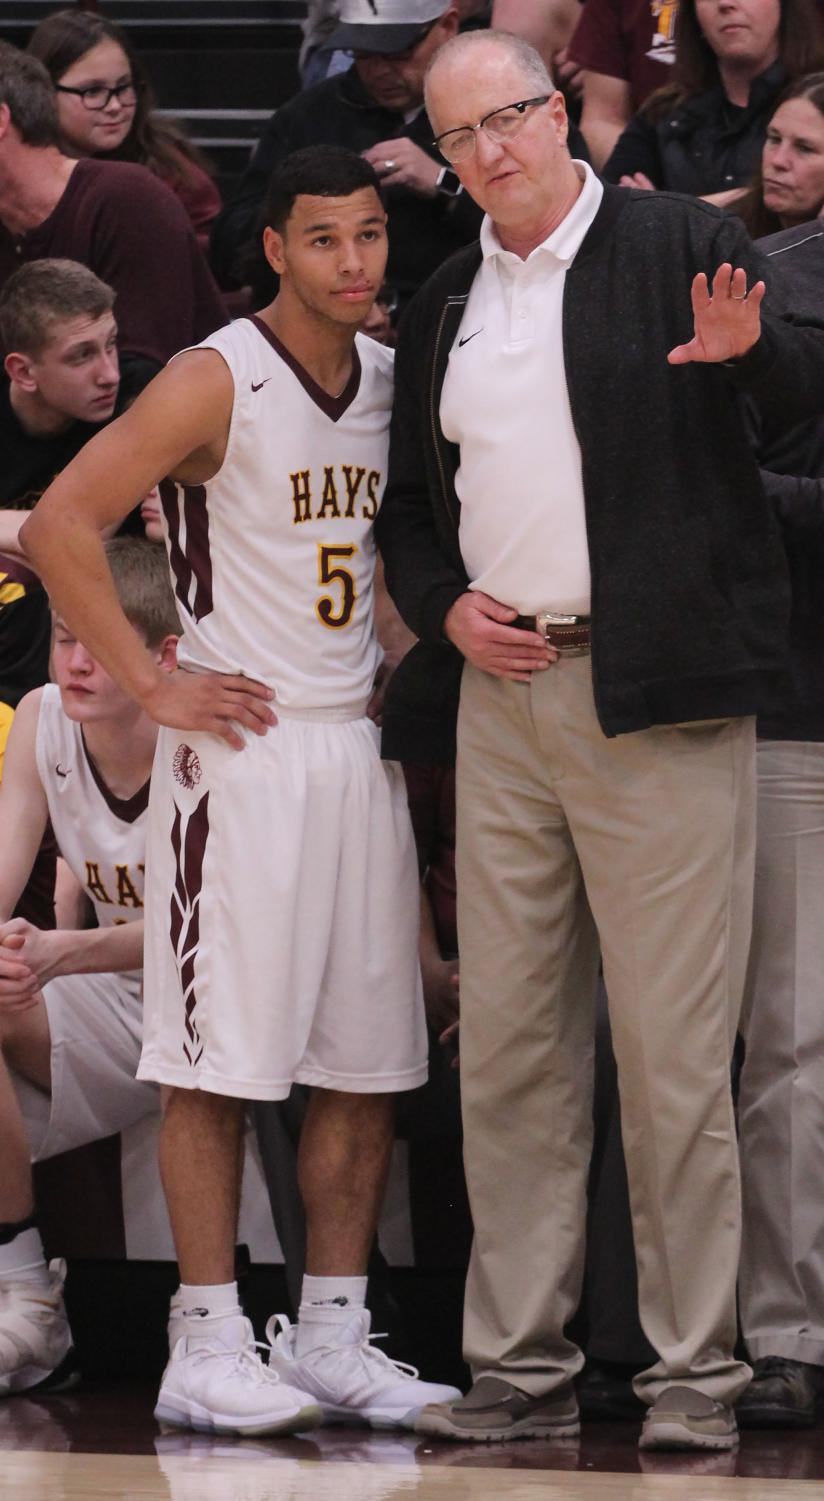 Head coach Rick Keltner instructs senior point guard Ethan Nunnery after coming out of the game.